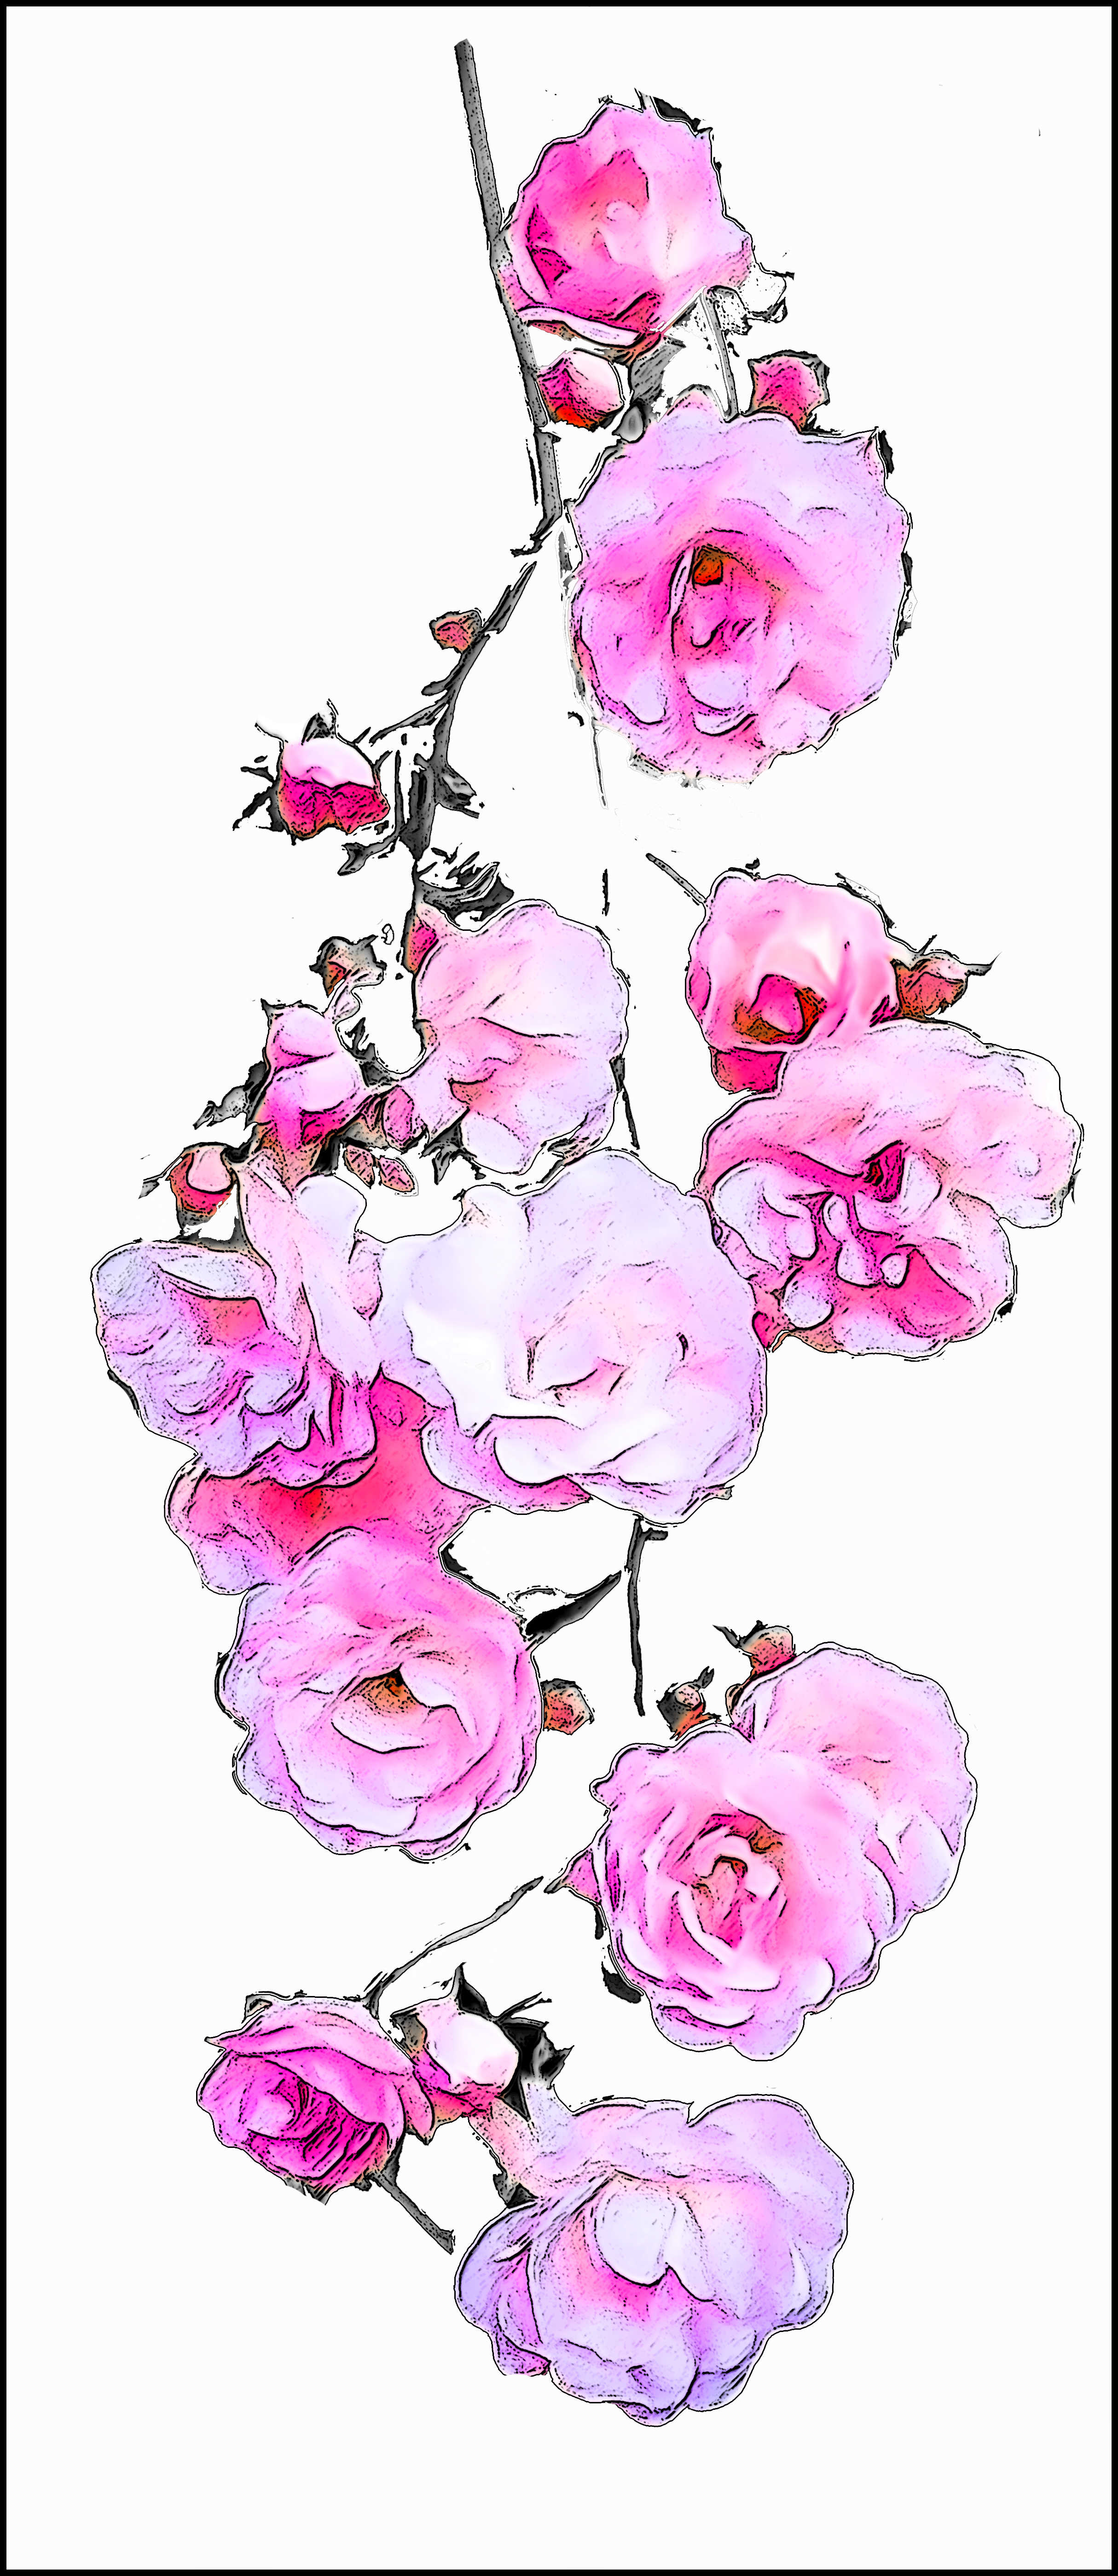 Hanging delightful pink roses A3+ on Hot Press paper £45